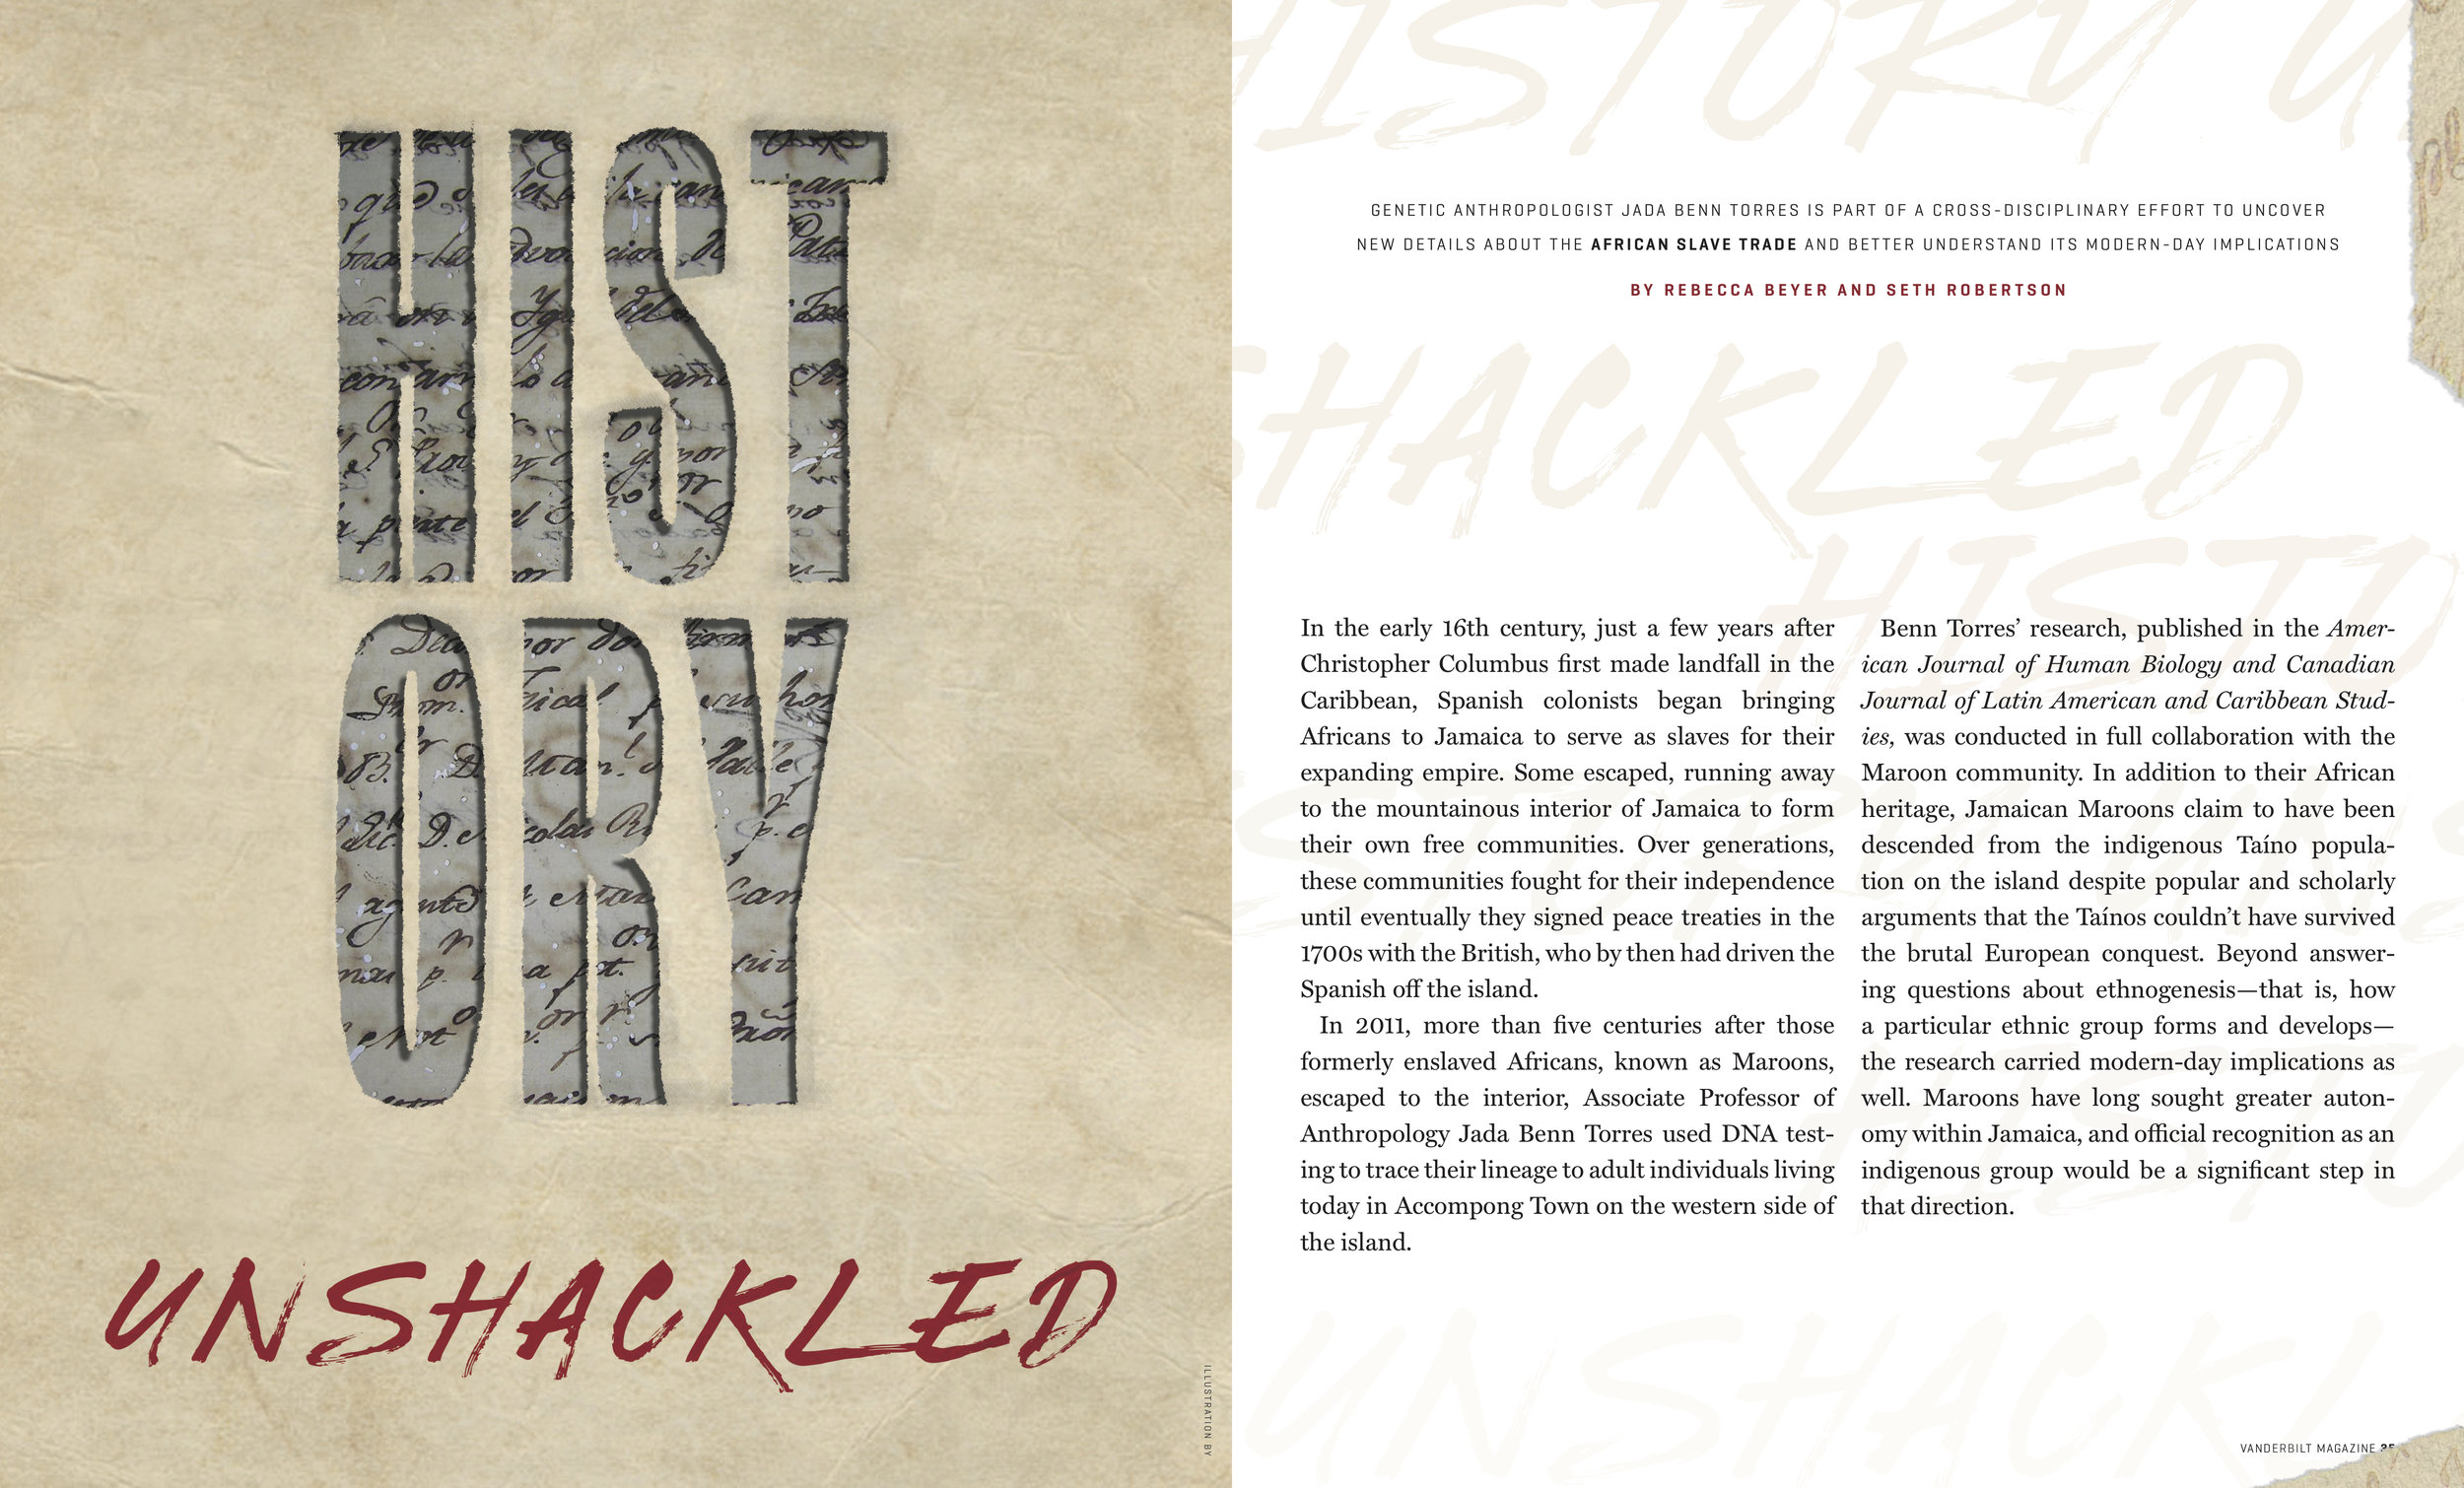 Spread main art and layout design for History Unshackled feature in 2019 Vanderbilt Magazine